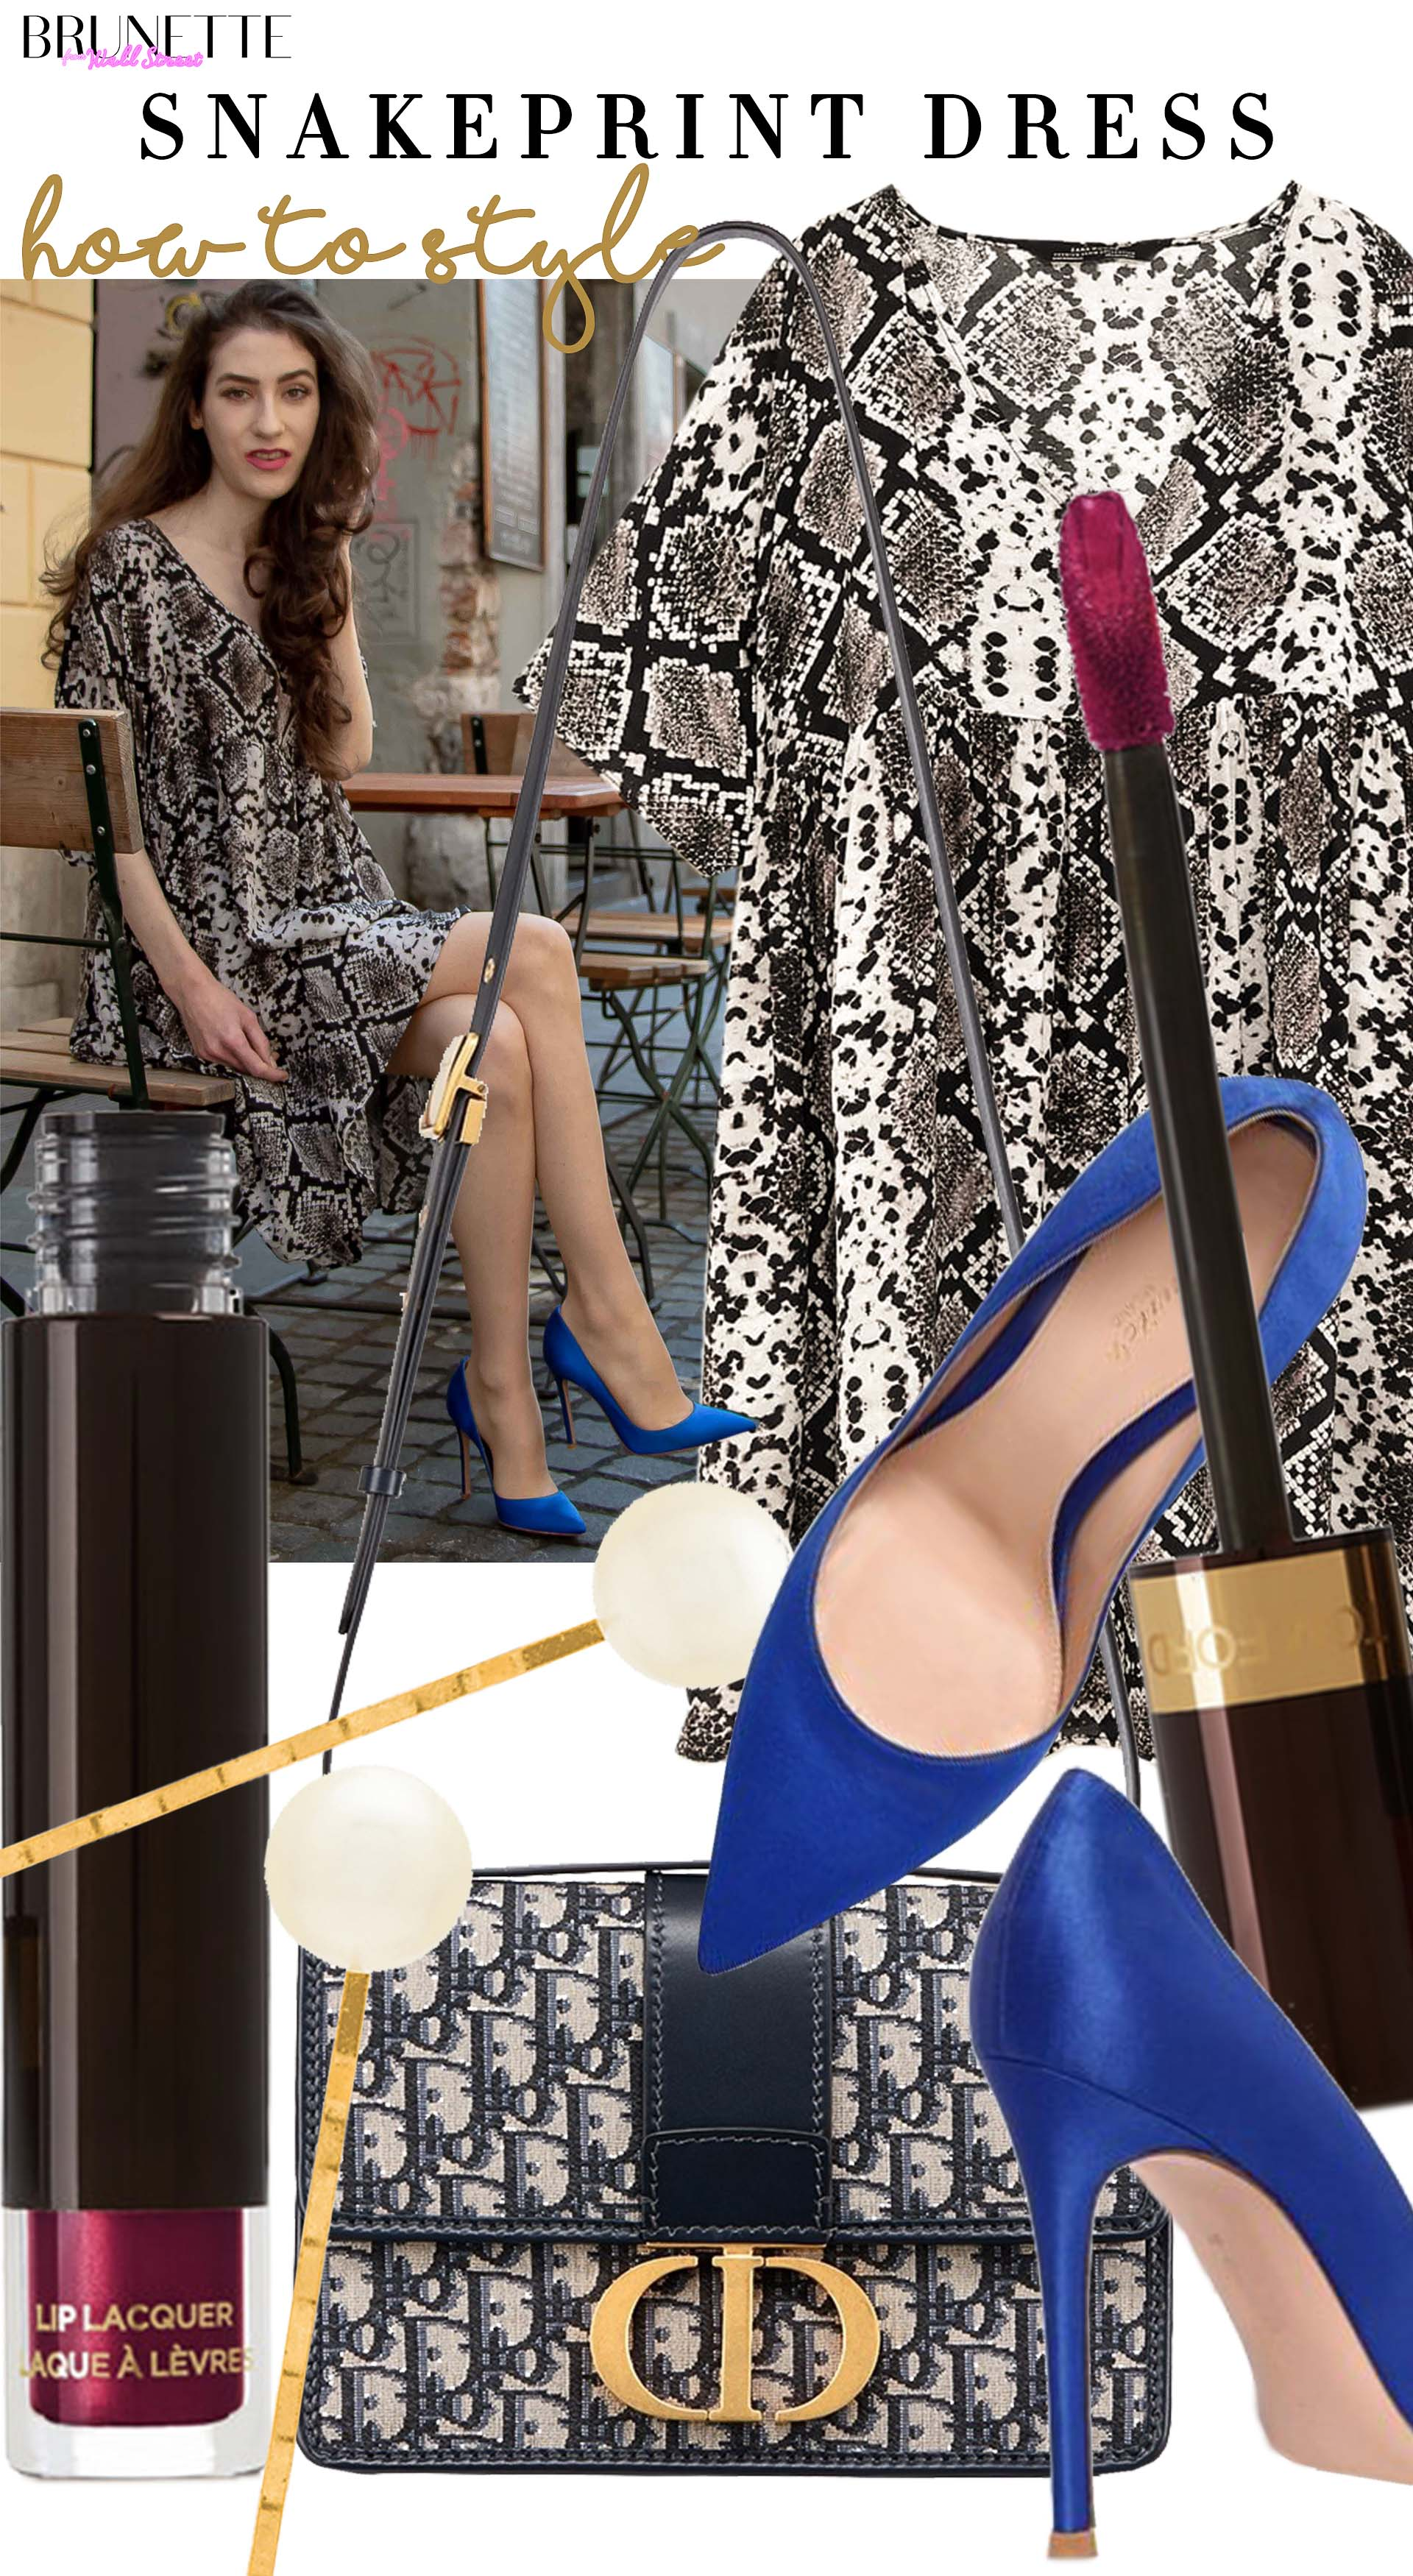 Brunette from Wall Street brunch outfit snakeskin print dress dior montaigne 30 bag gianvito rossi blue pumps jennifer behr pearl hair pin